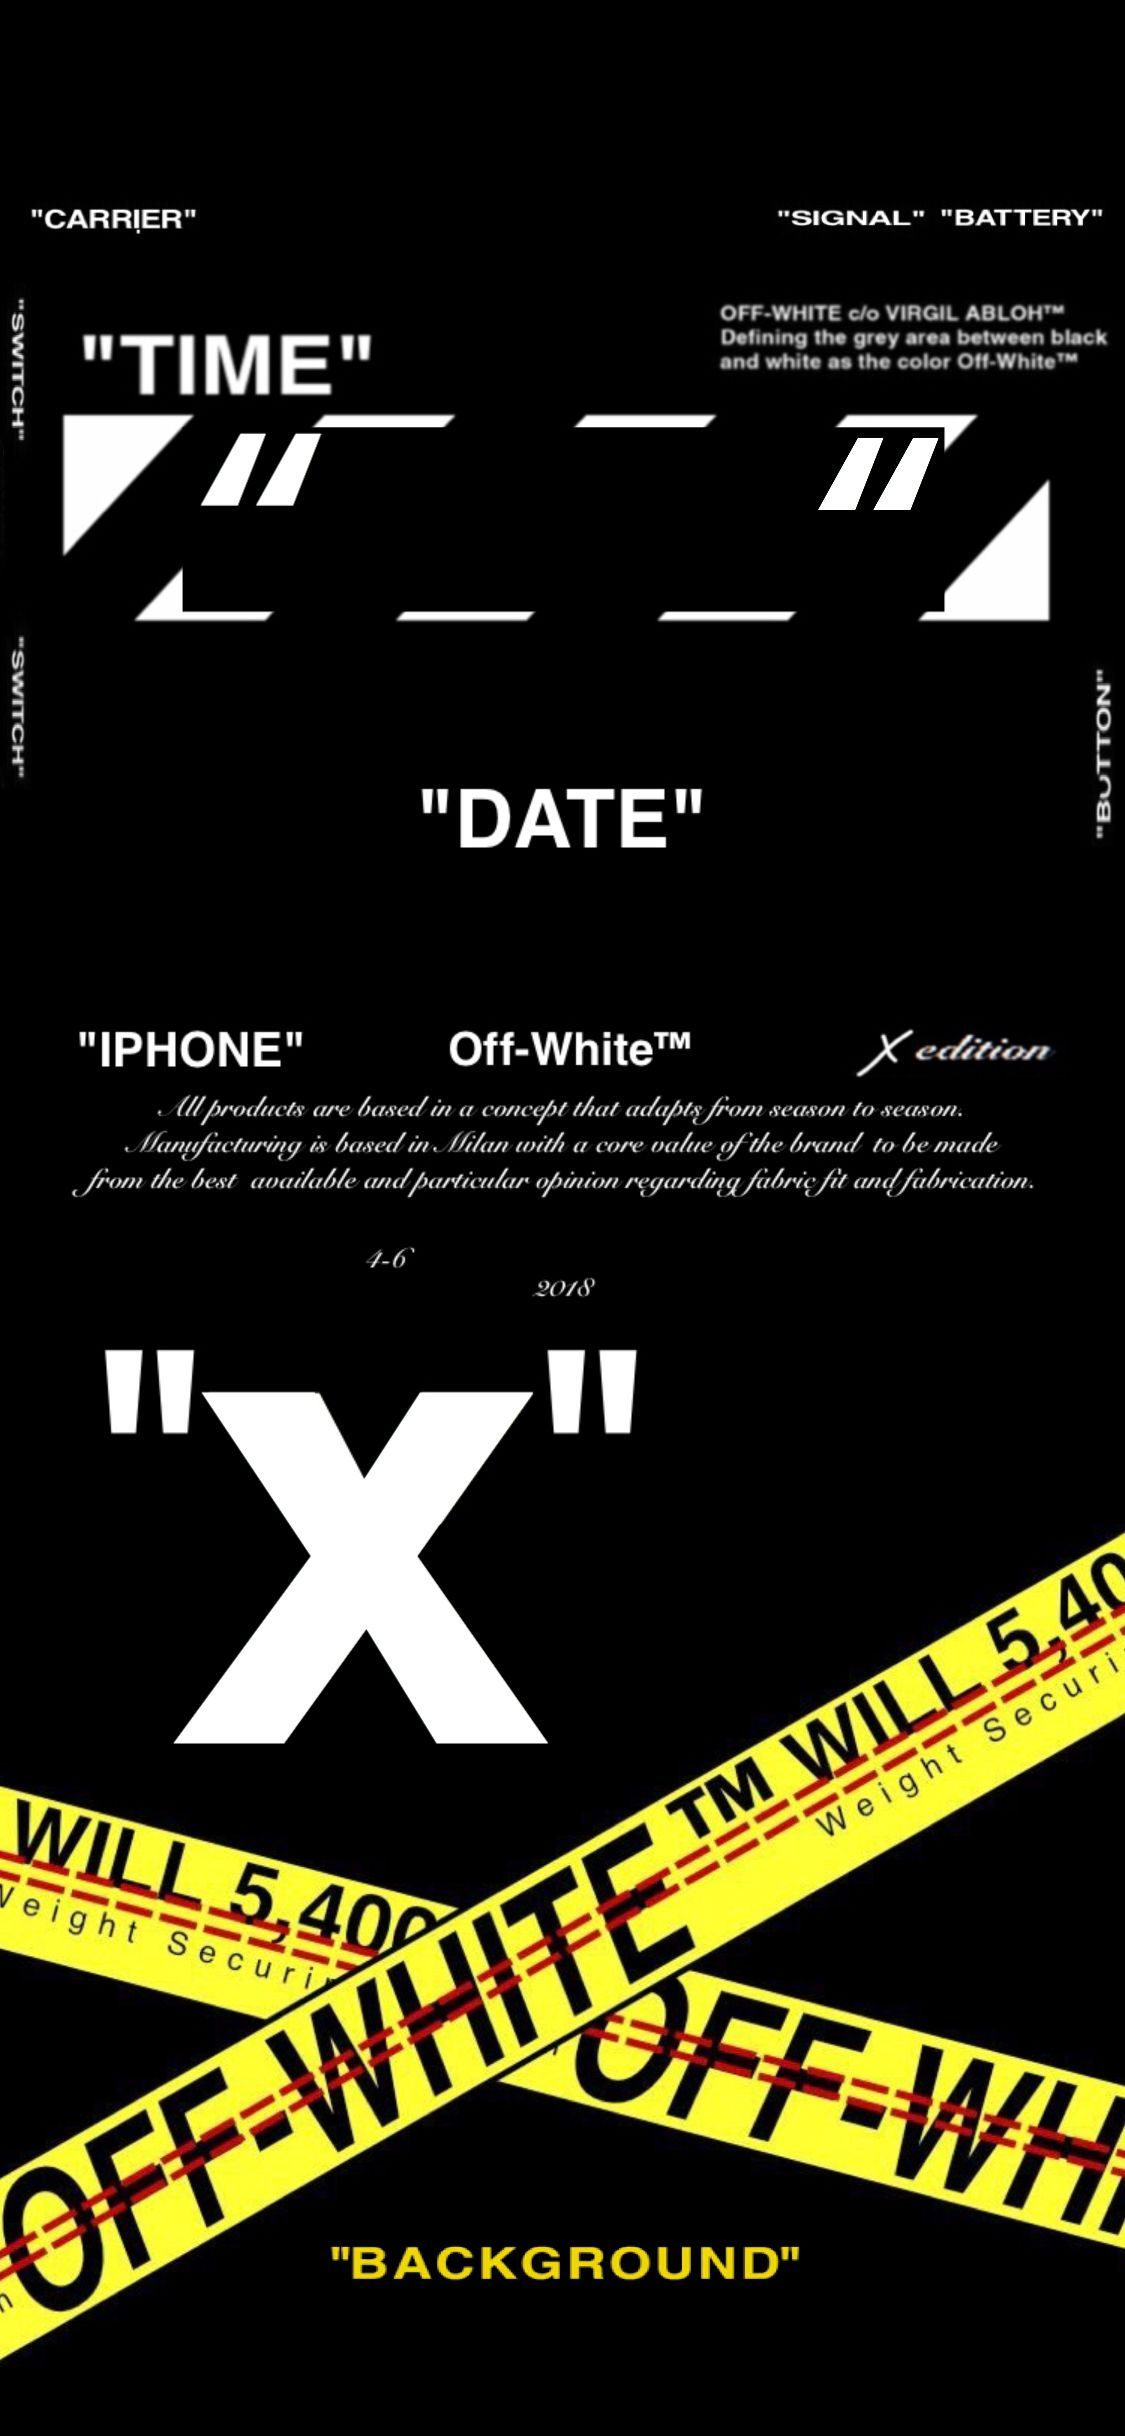 Iphone X Edition Off White Wallpaper Iphonex Hypee In 2019